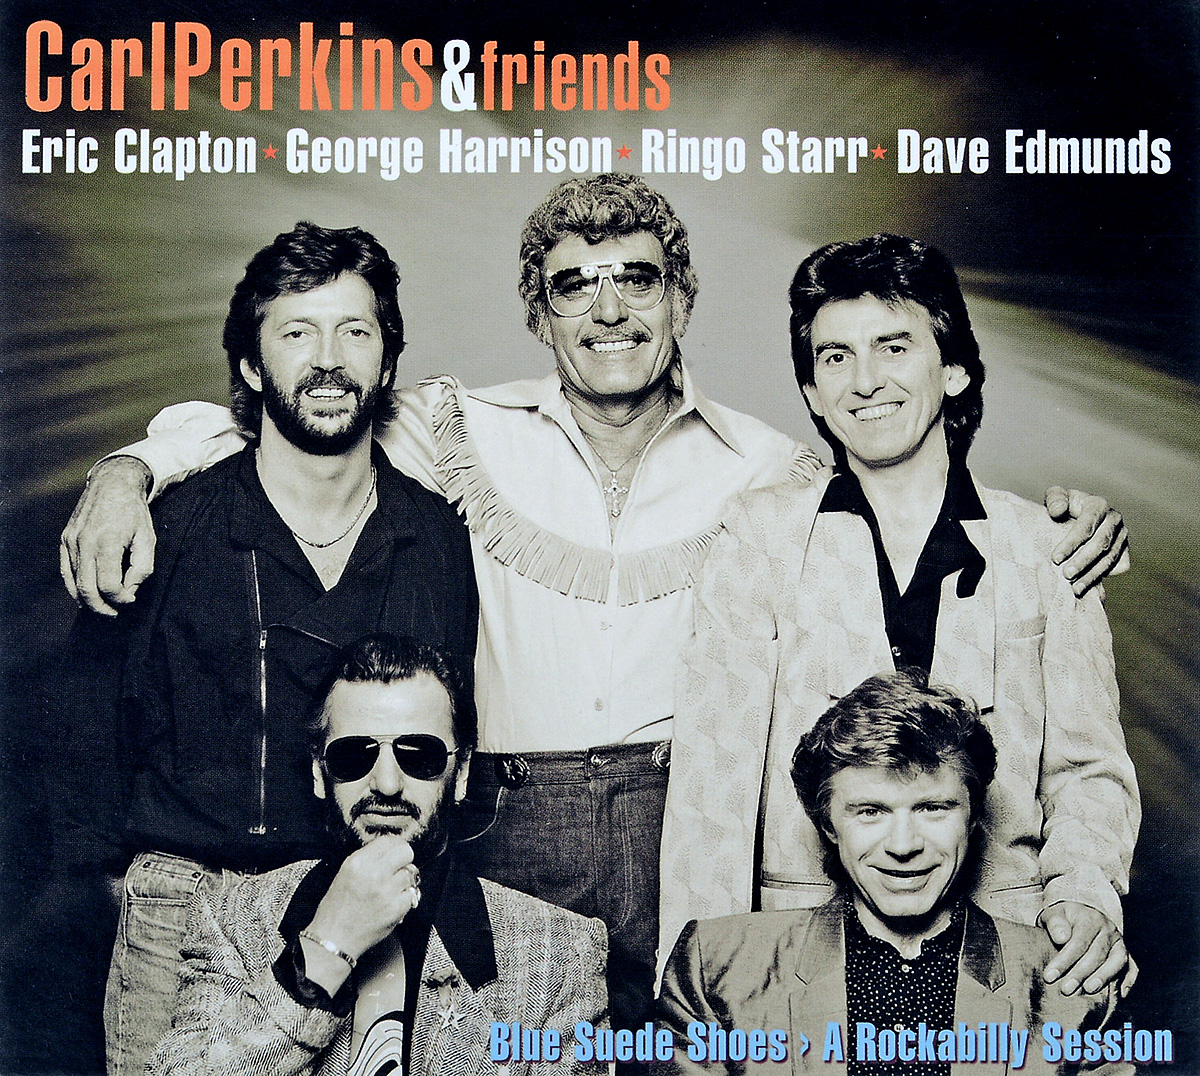 Carl Perkins & Friends: Blue Suede Shoes: A Rockabilly Session: 30th Anniversary Edition (CD + DVD) принтер лазерный brother hl 1110r